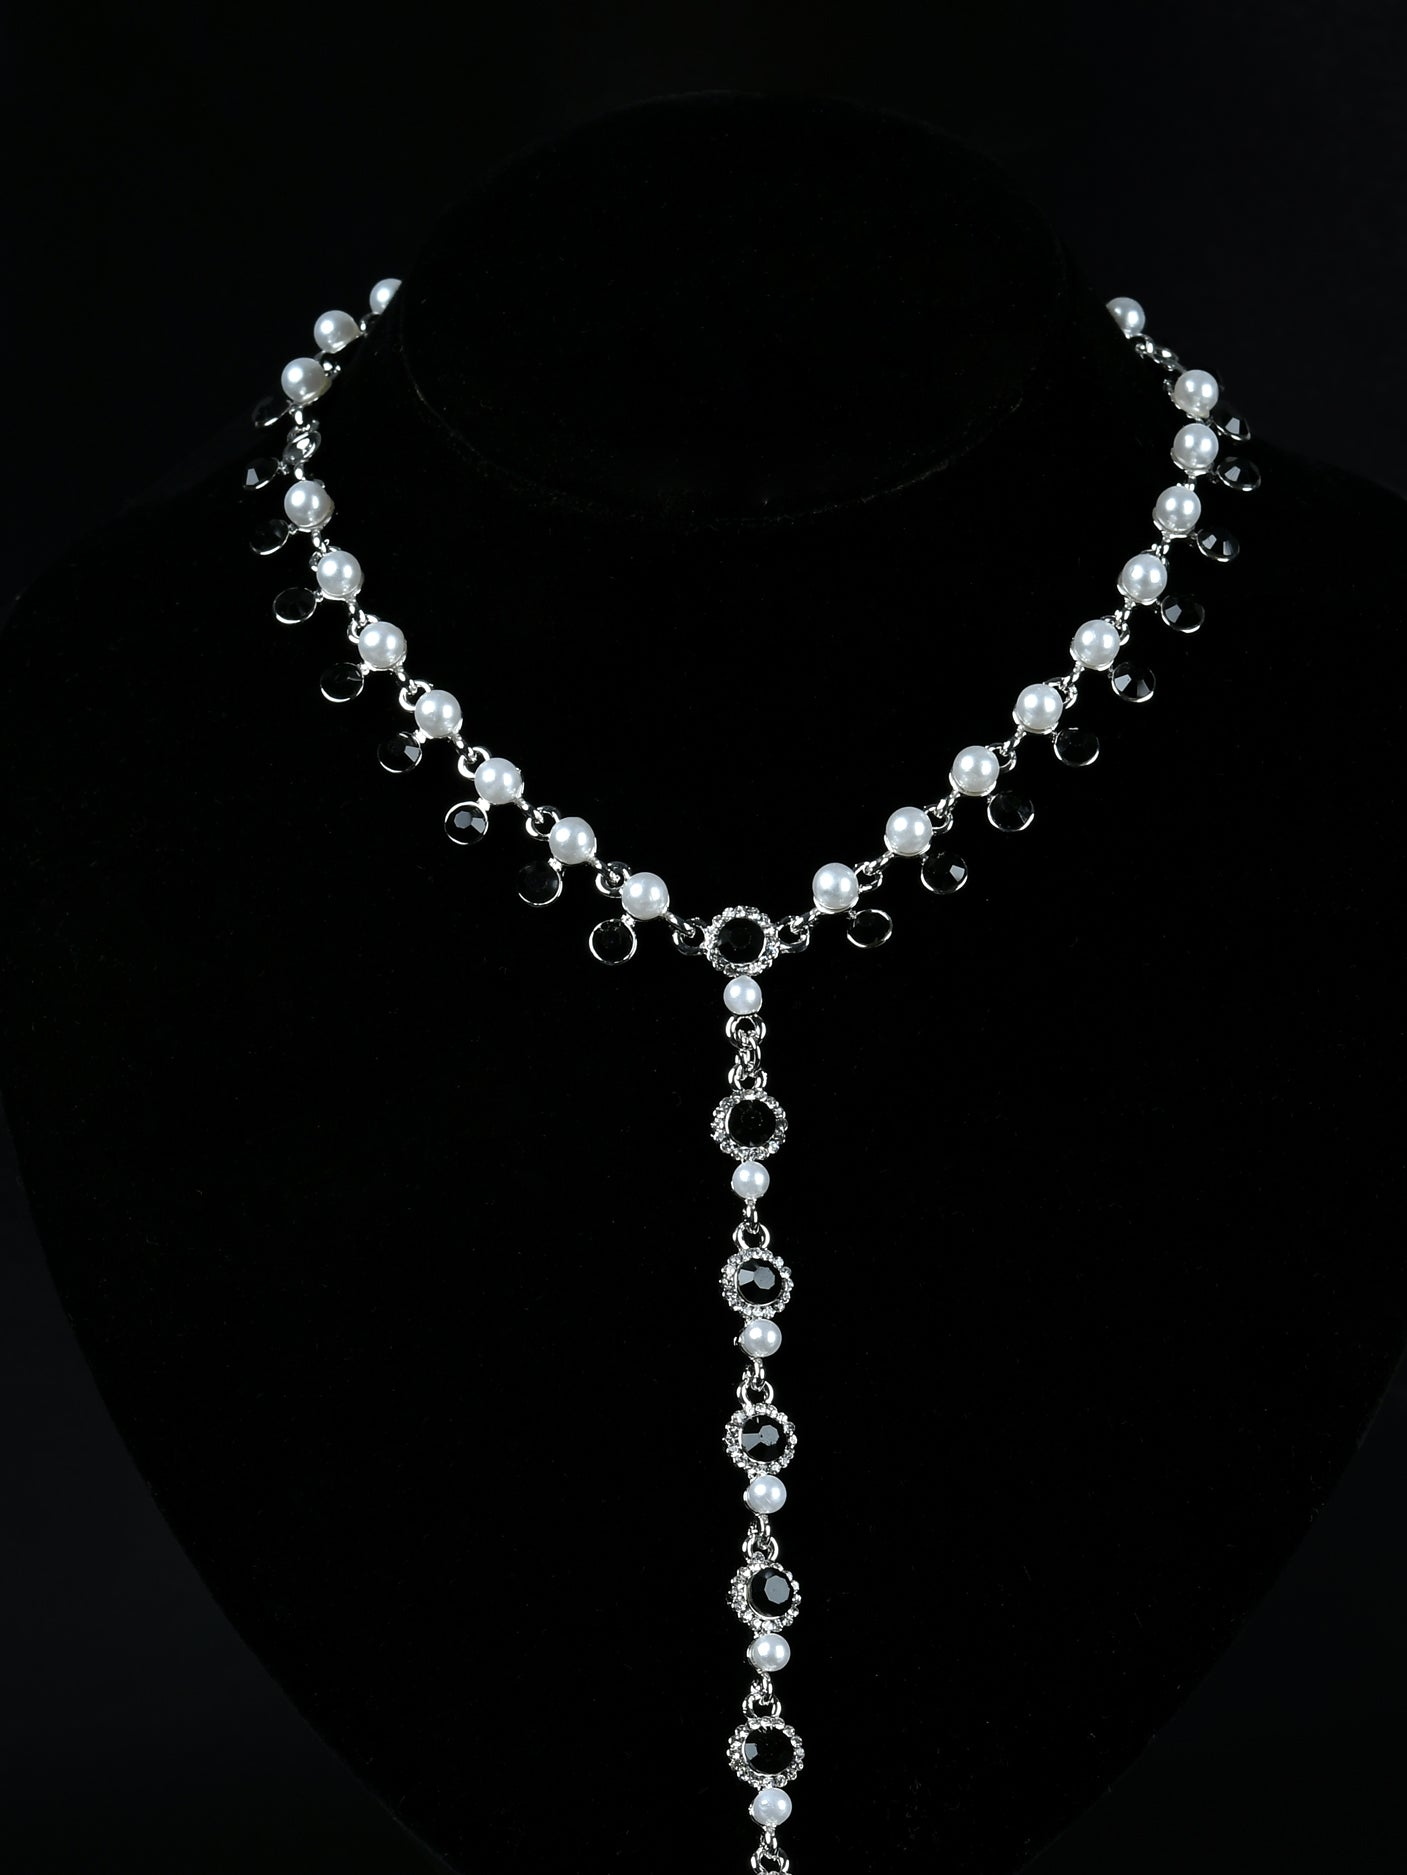 Rhinestone Pearl Necklace